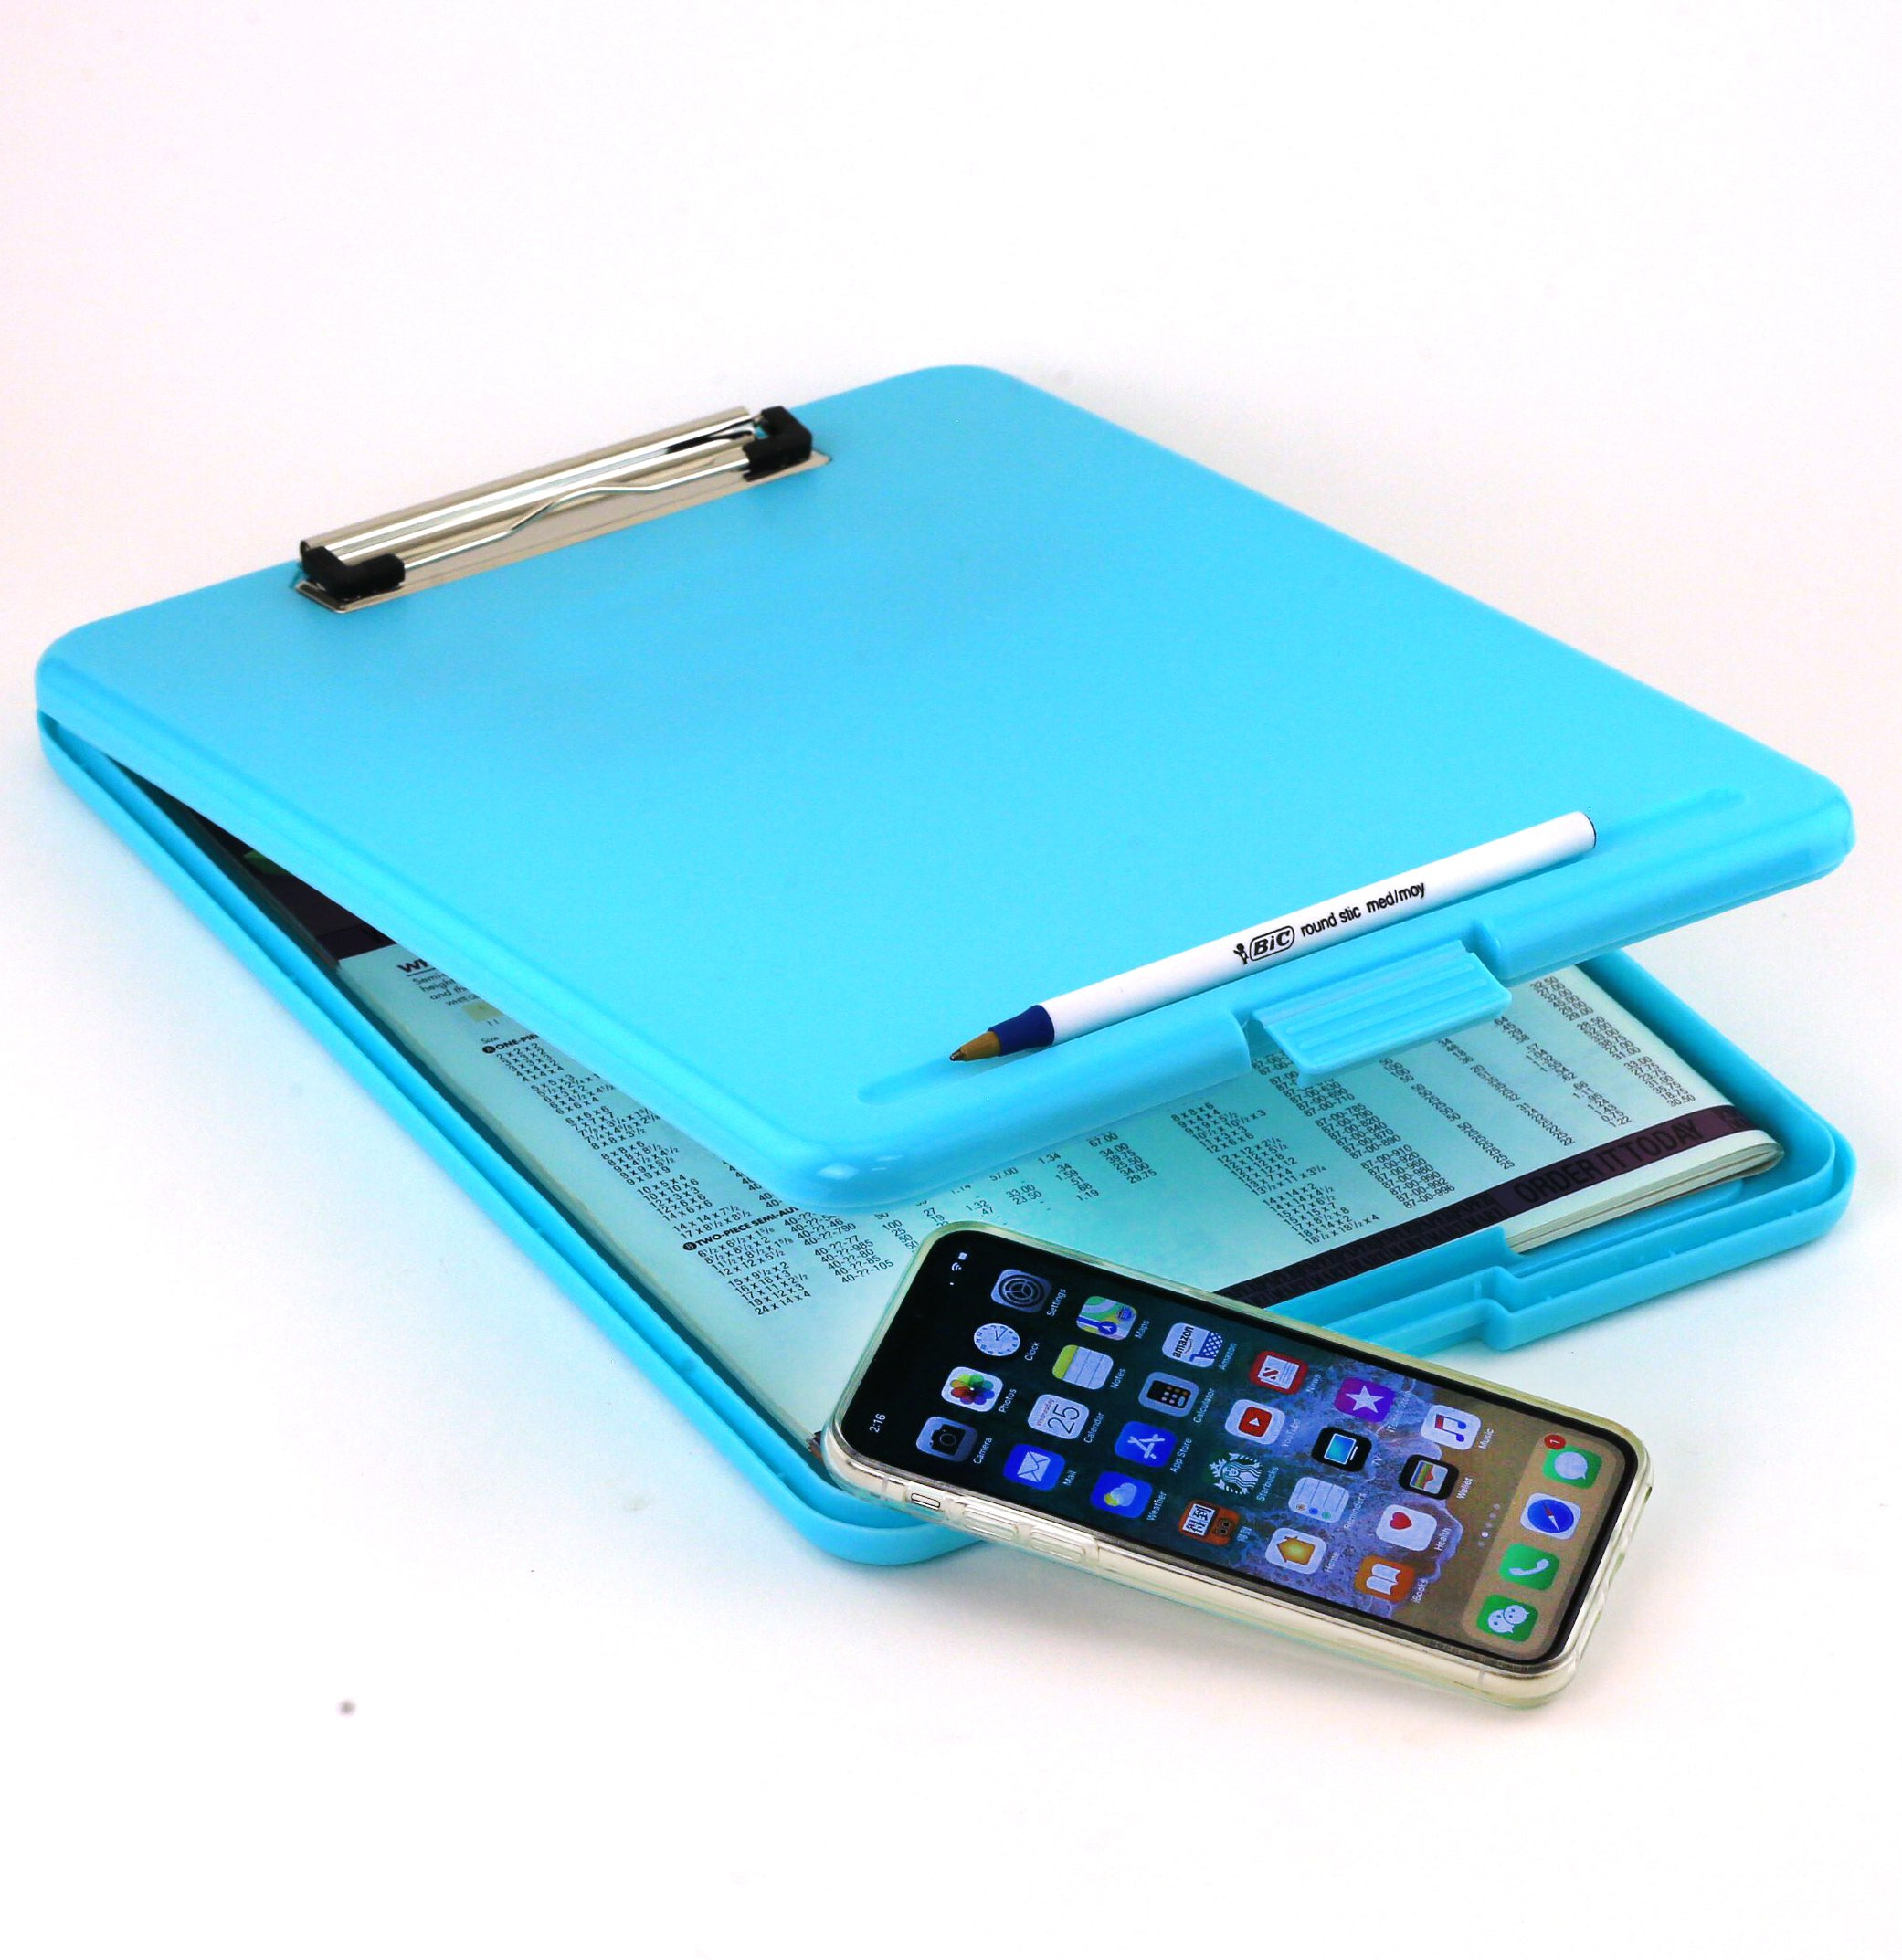 Adorox Letter Size Slim-case Storage Clipboard Teal Plastic Storage Clipboard for Students, Teachers, Sales, Utility, Industrial, Office Professional (Teal)) by Adorox